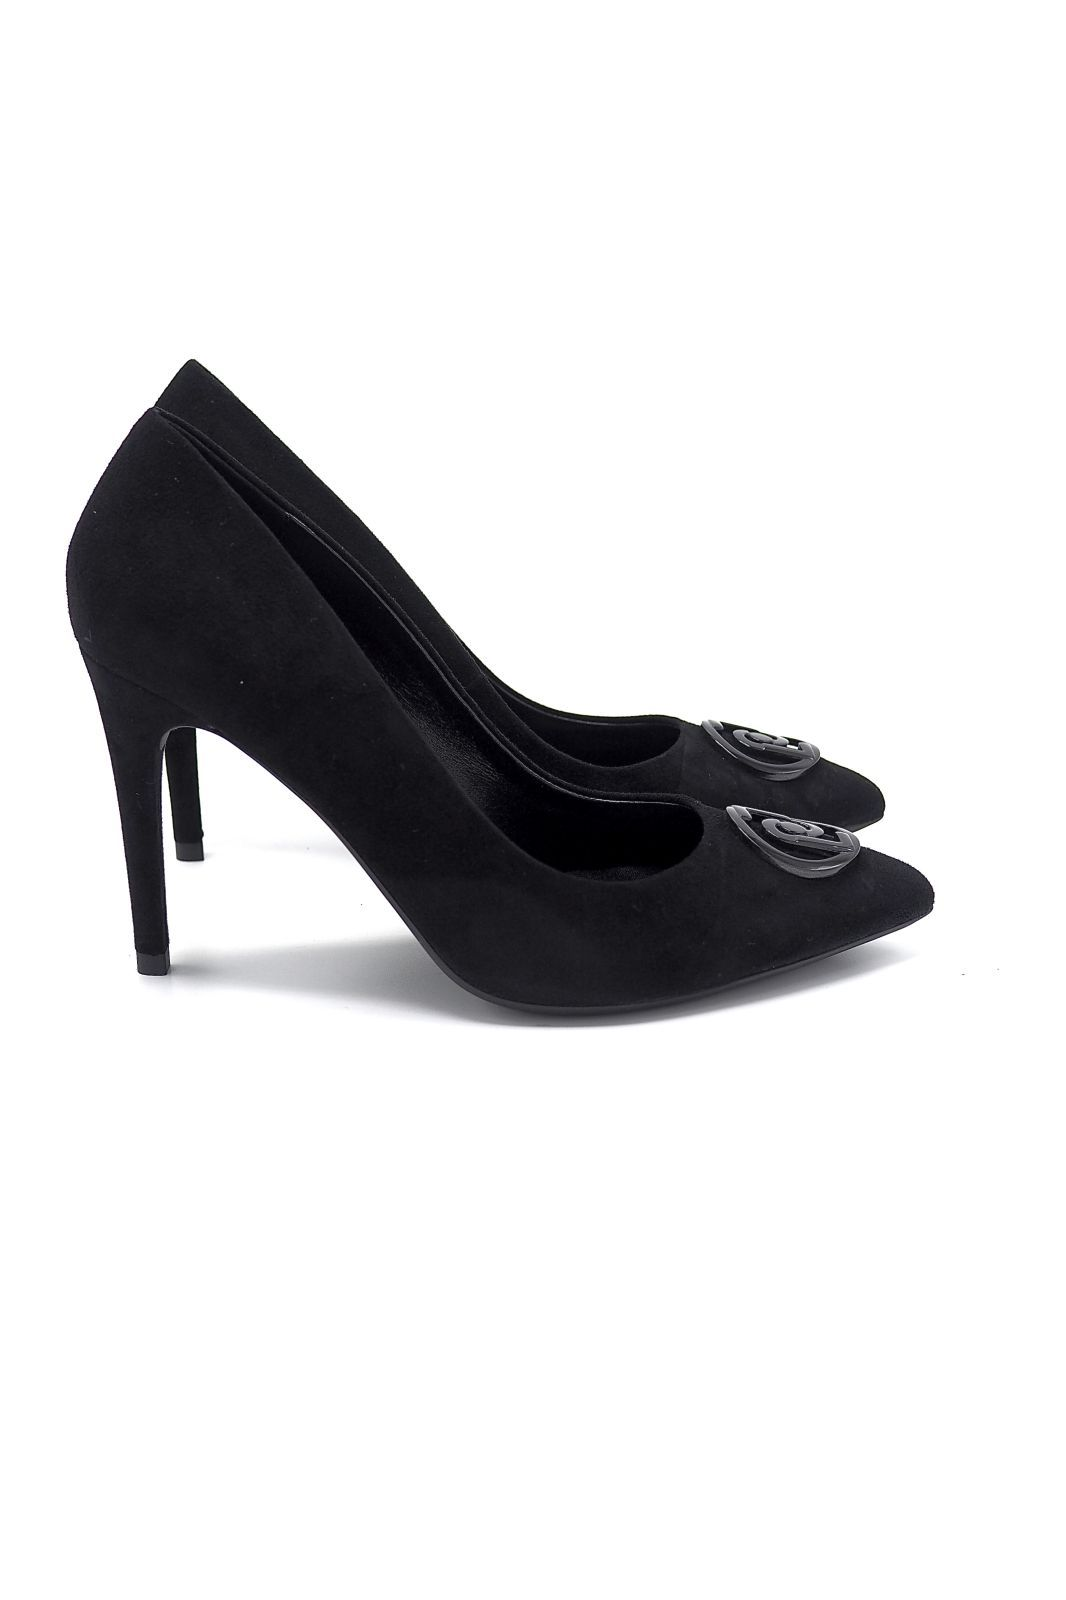 Liu Jo Chaussures escarpin Noir femmes (Liu Jo Shoe-Epin noir - VICKIE Escarpin nubuk noir) - Marine | Much more than shoes